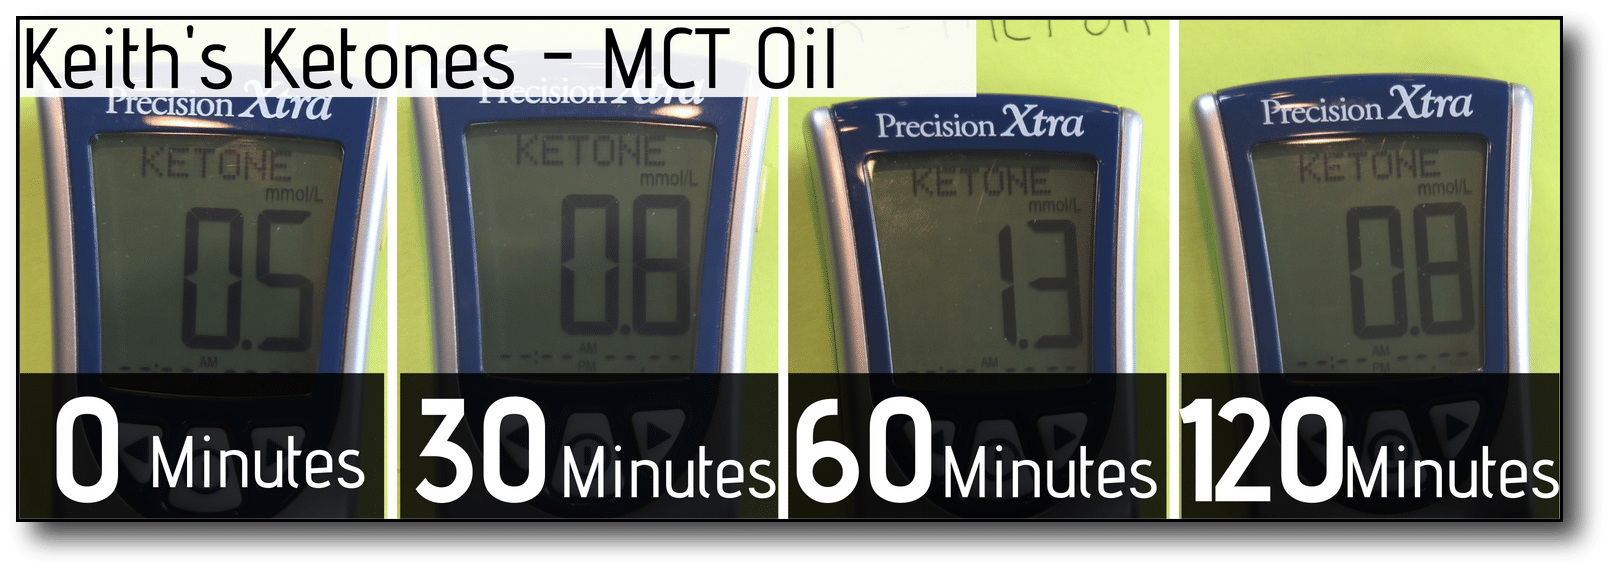 coffee and intermittent fasting-keith ketones mct oil